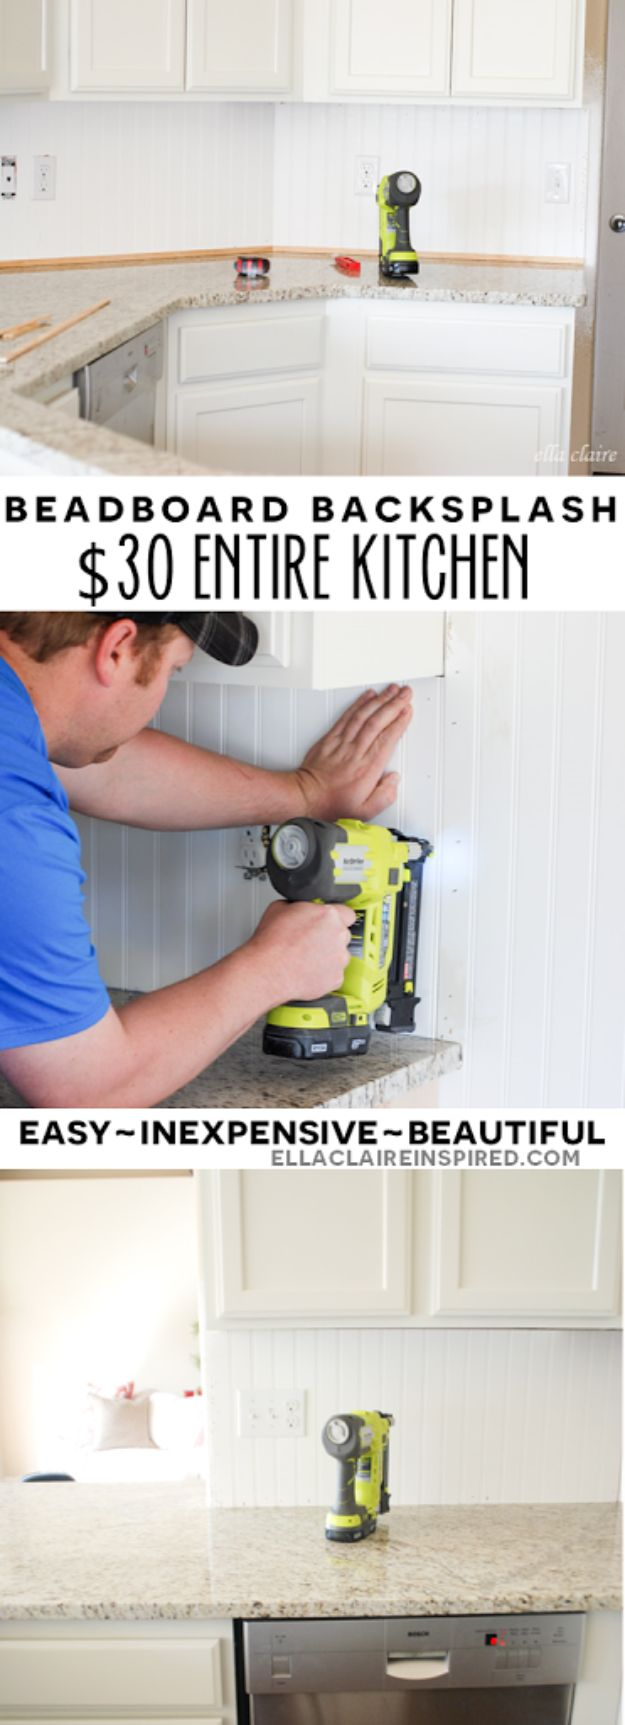 DIY Home Improvement Projects On A Budget - $30 Beadboard Kitchen Backsplash - Cool Home Improvement Hacks, Easy and Cheap Do It Yourself Tutorials for Updating and Renovating Your House - Home Decor Tips and Tricks, Remodeling and Decorating Hacks - DIY Projects